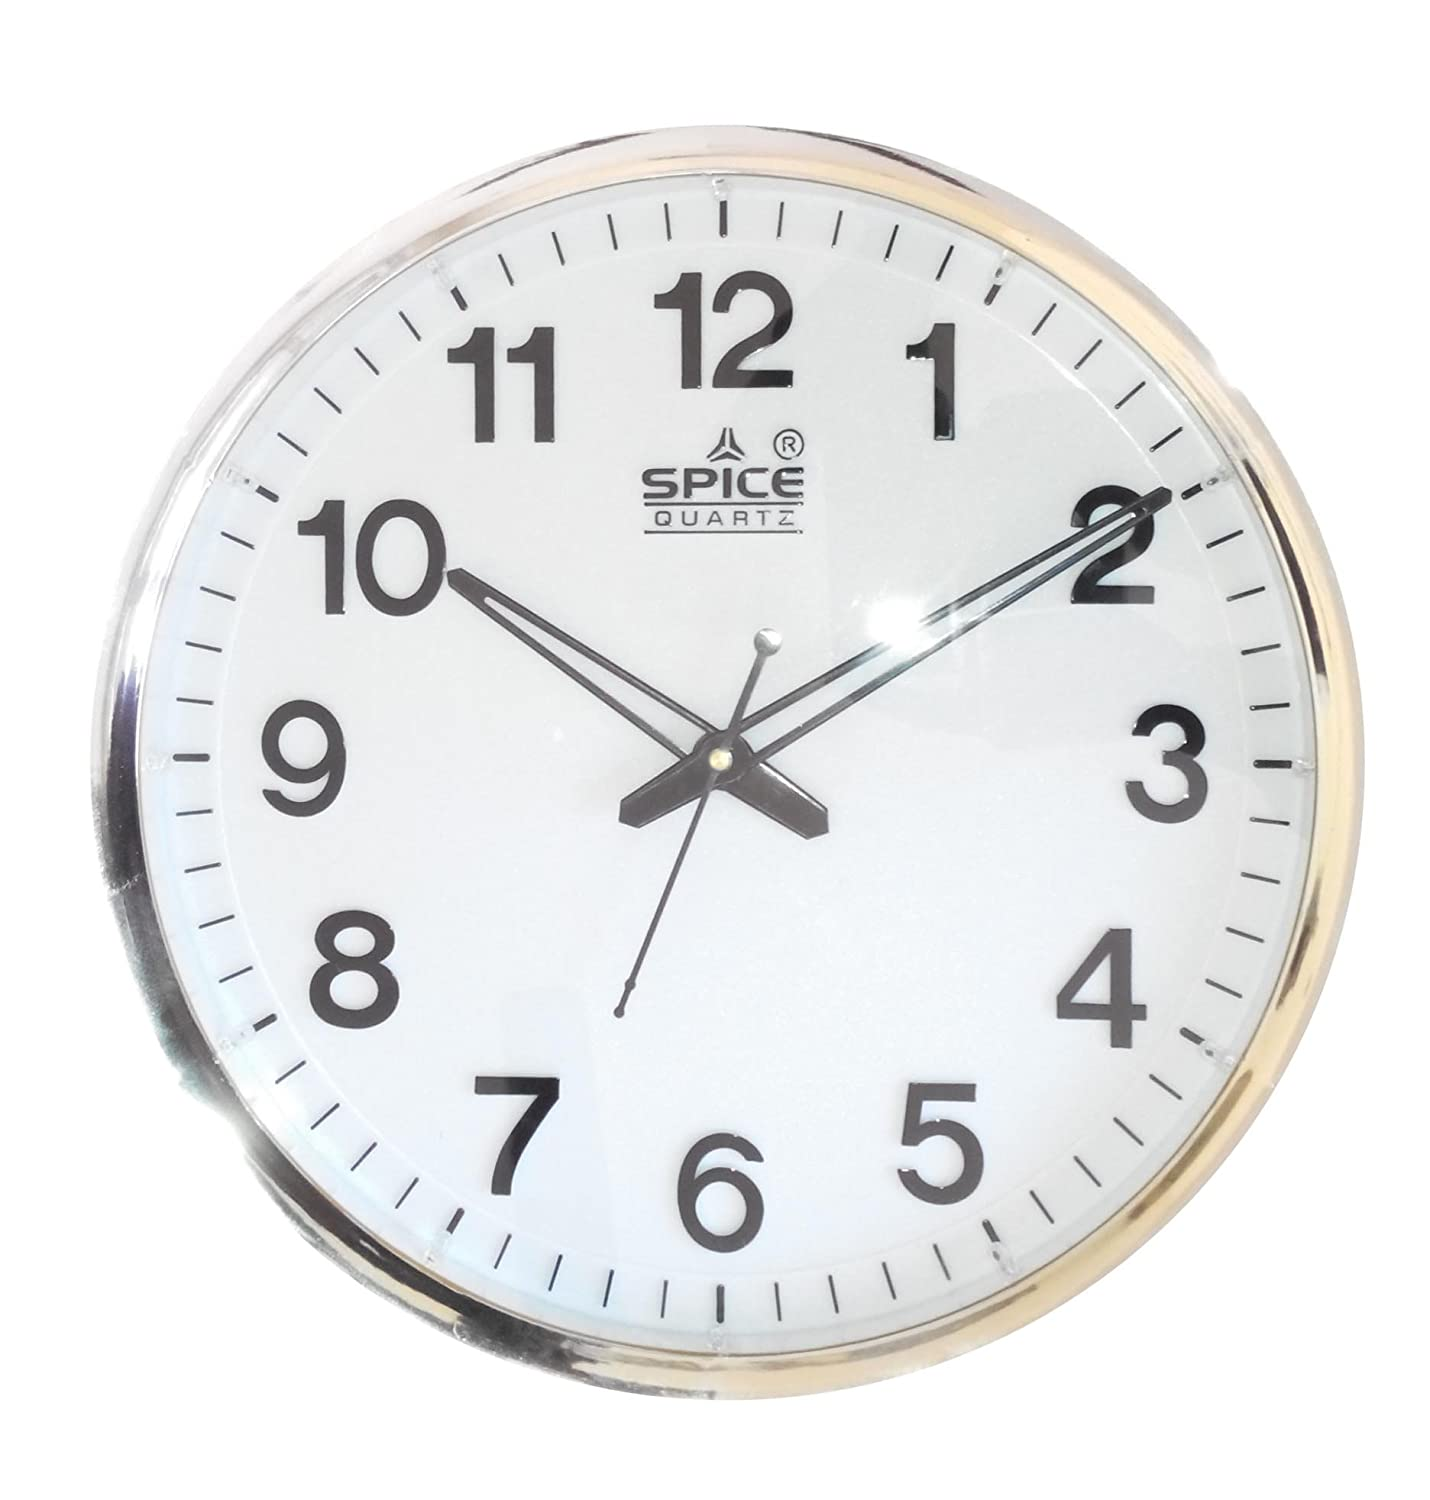 Buy pke spice led wall clock online at low prices in india buy pke spice led wall clock online at low prices in india amazon amipublicfo Choice Image